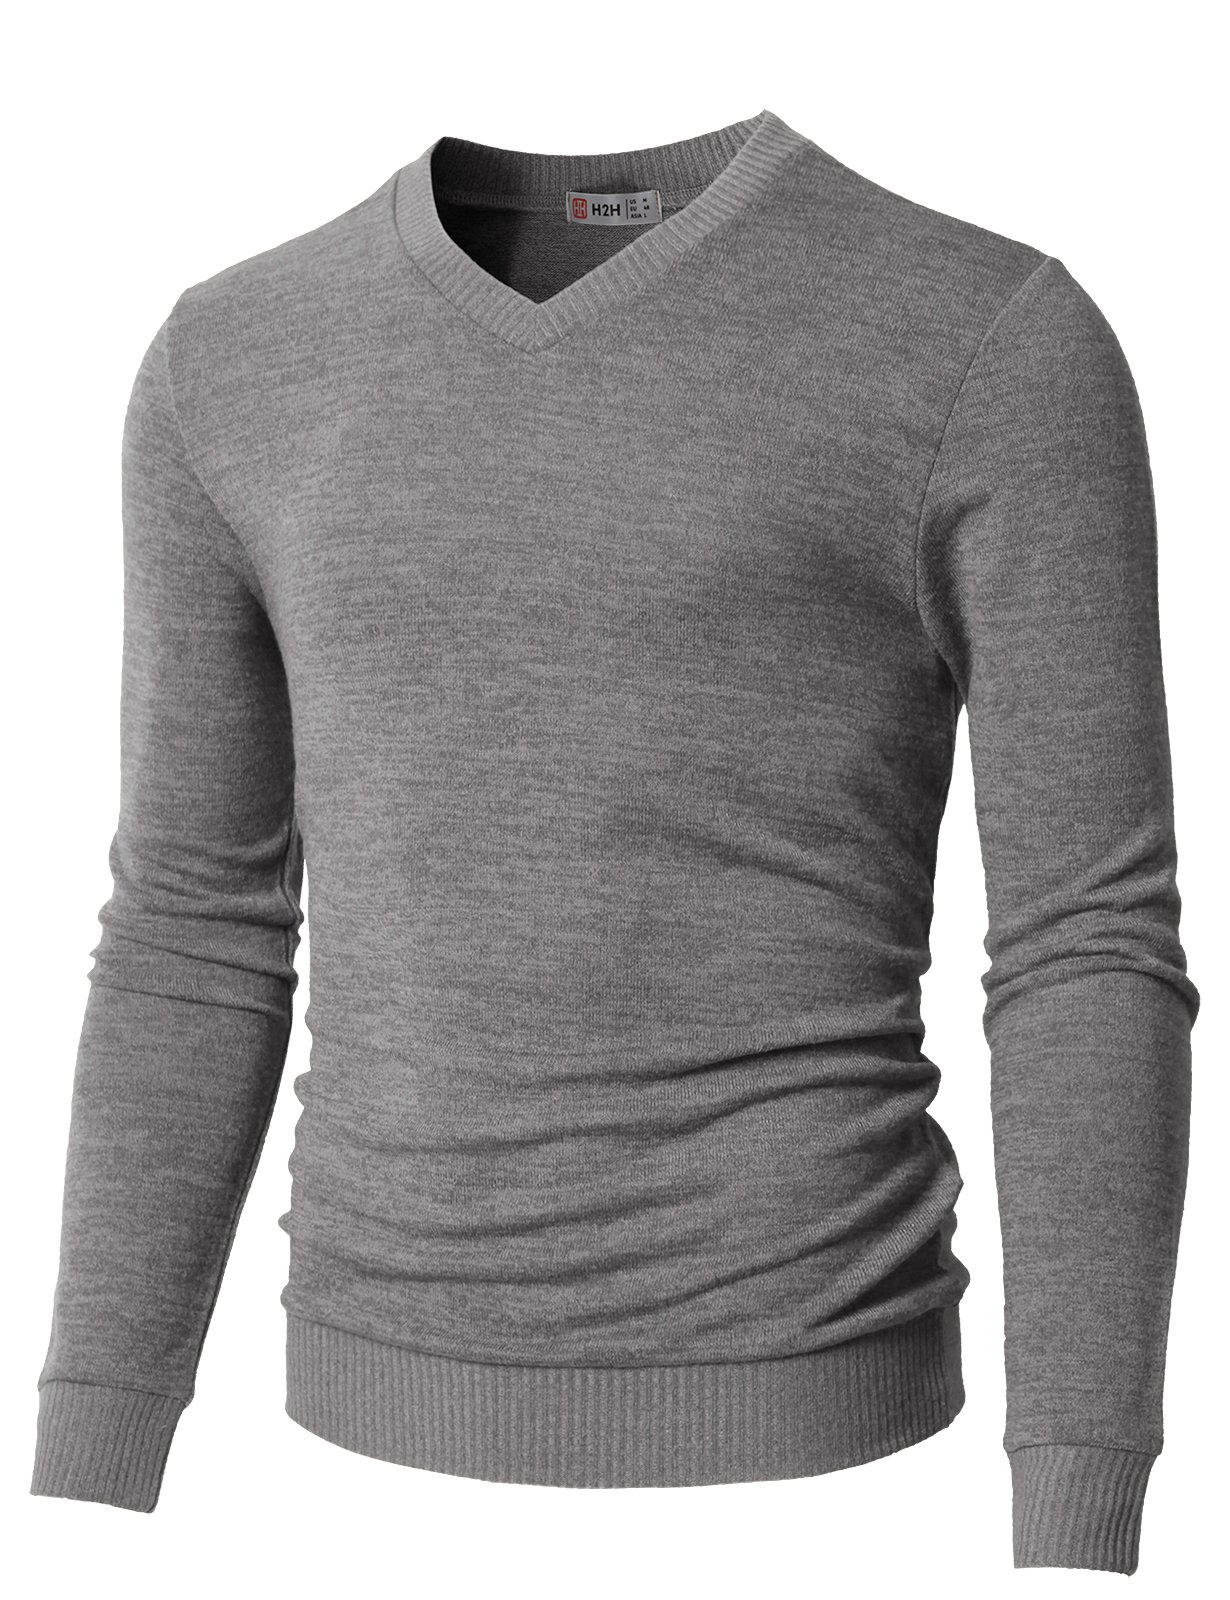 H2H Mens Slim Fit Ribbed Knit Cardigan Pullover With Pockets Gray US L/Asia XL (CMOSWL018)